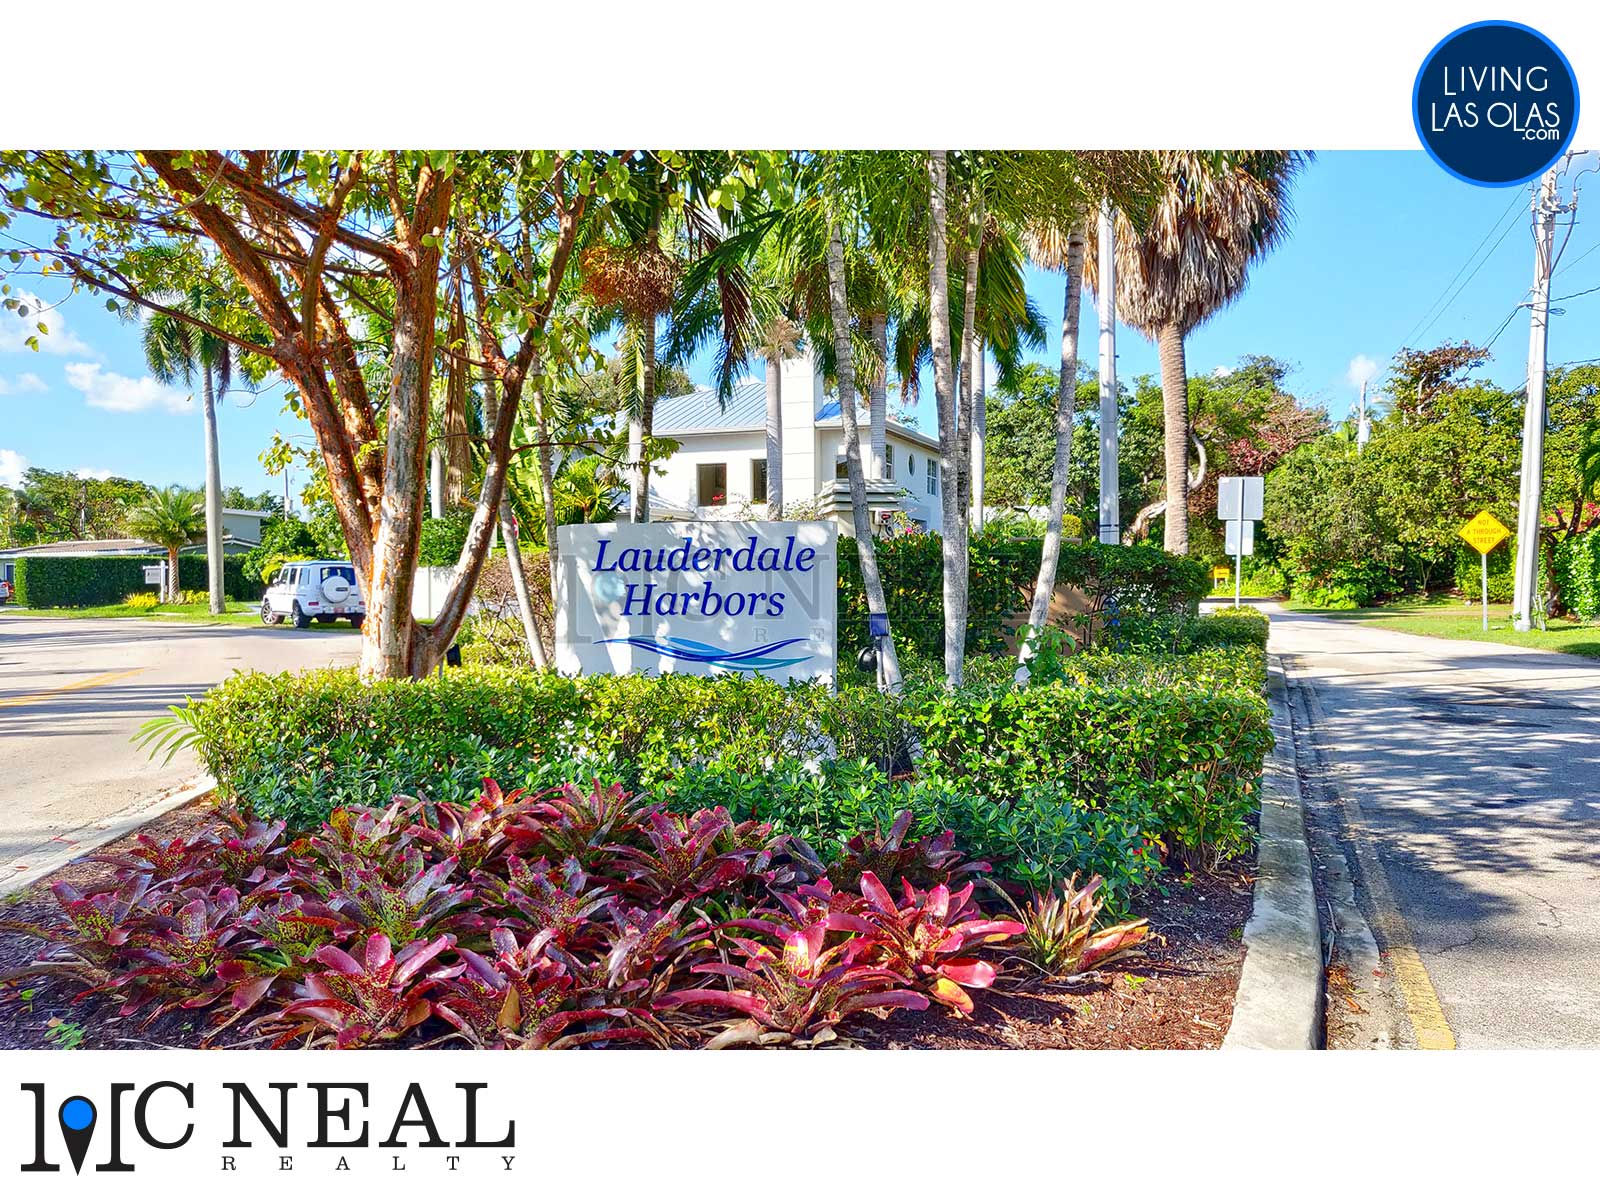 Lauderdale Harbours Homes Real Estate 01